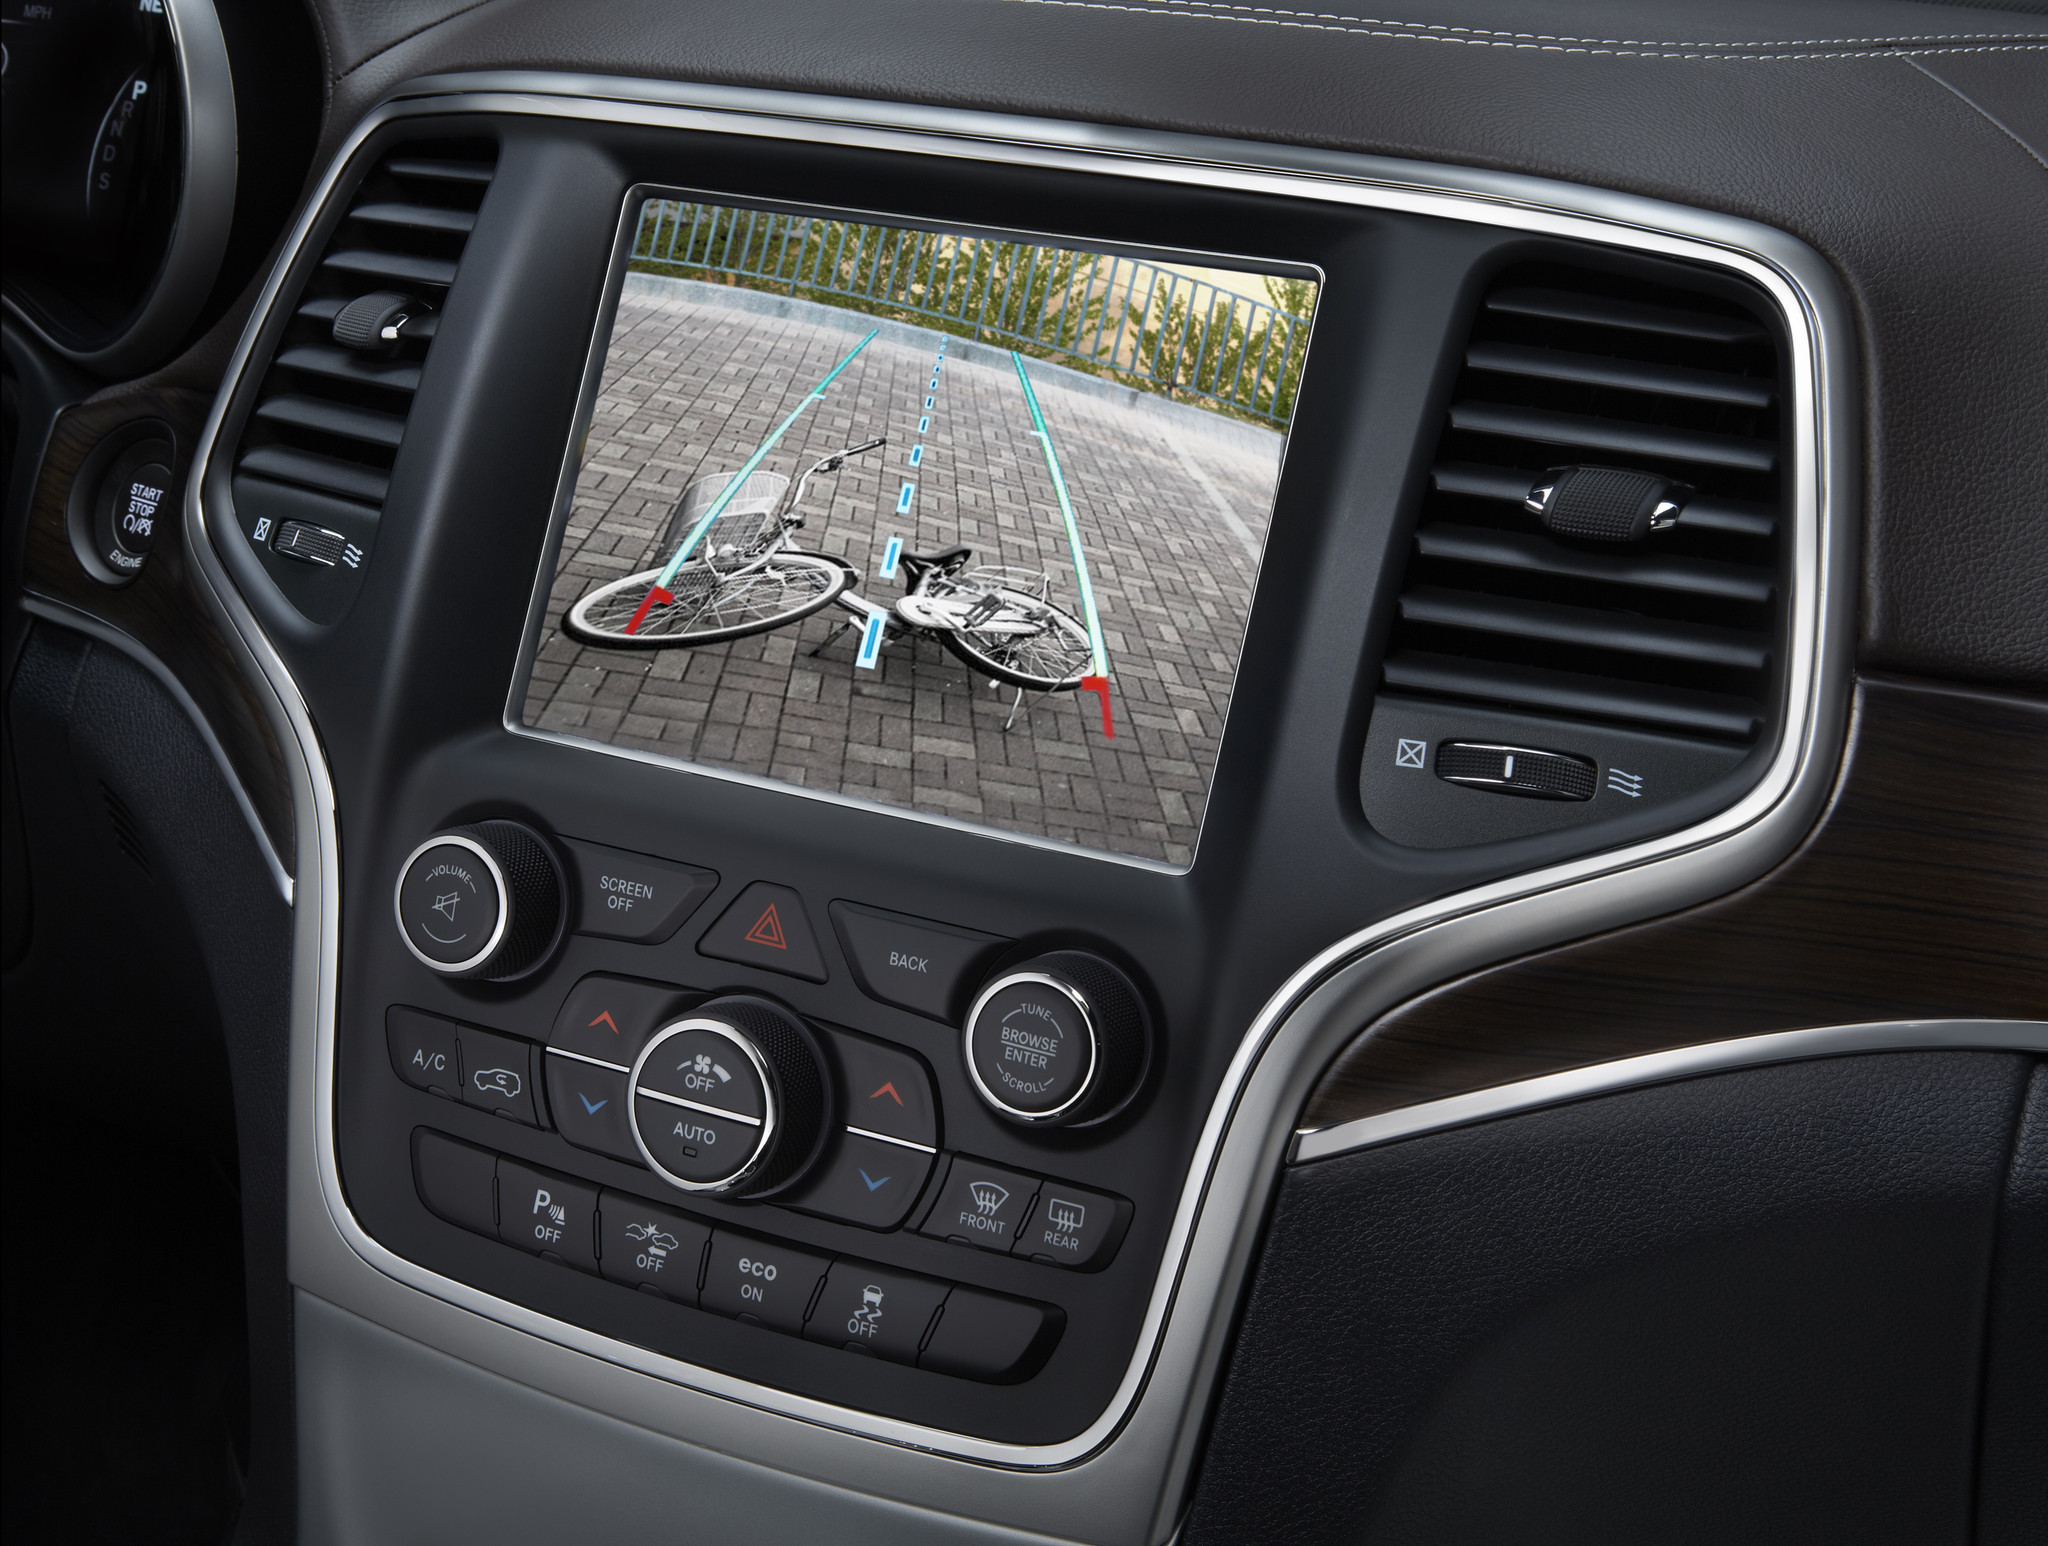 backup cameras to be required in all new vehicles starting in 2018 la times. Black Bedroom Furniture Sets. Home Design Ideas